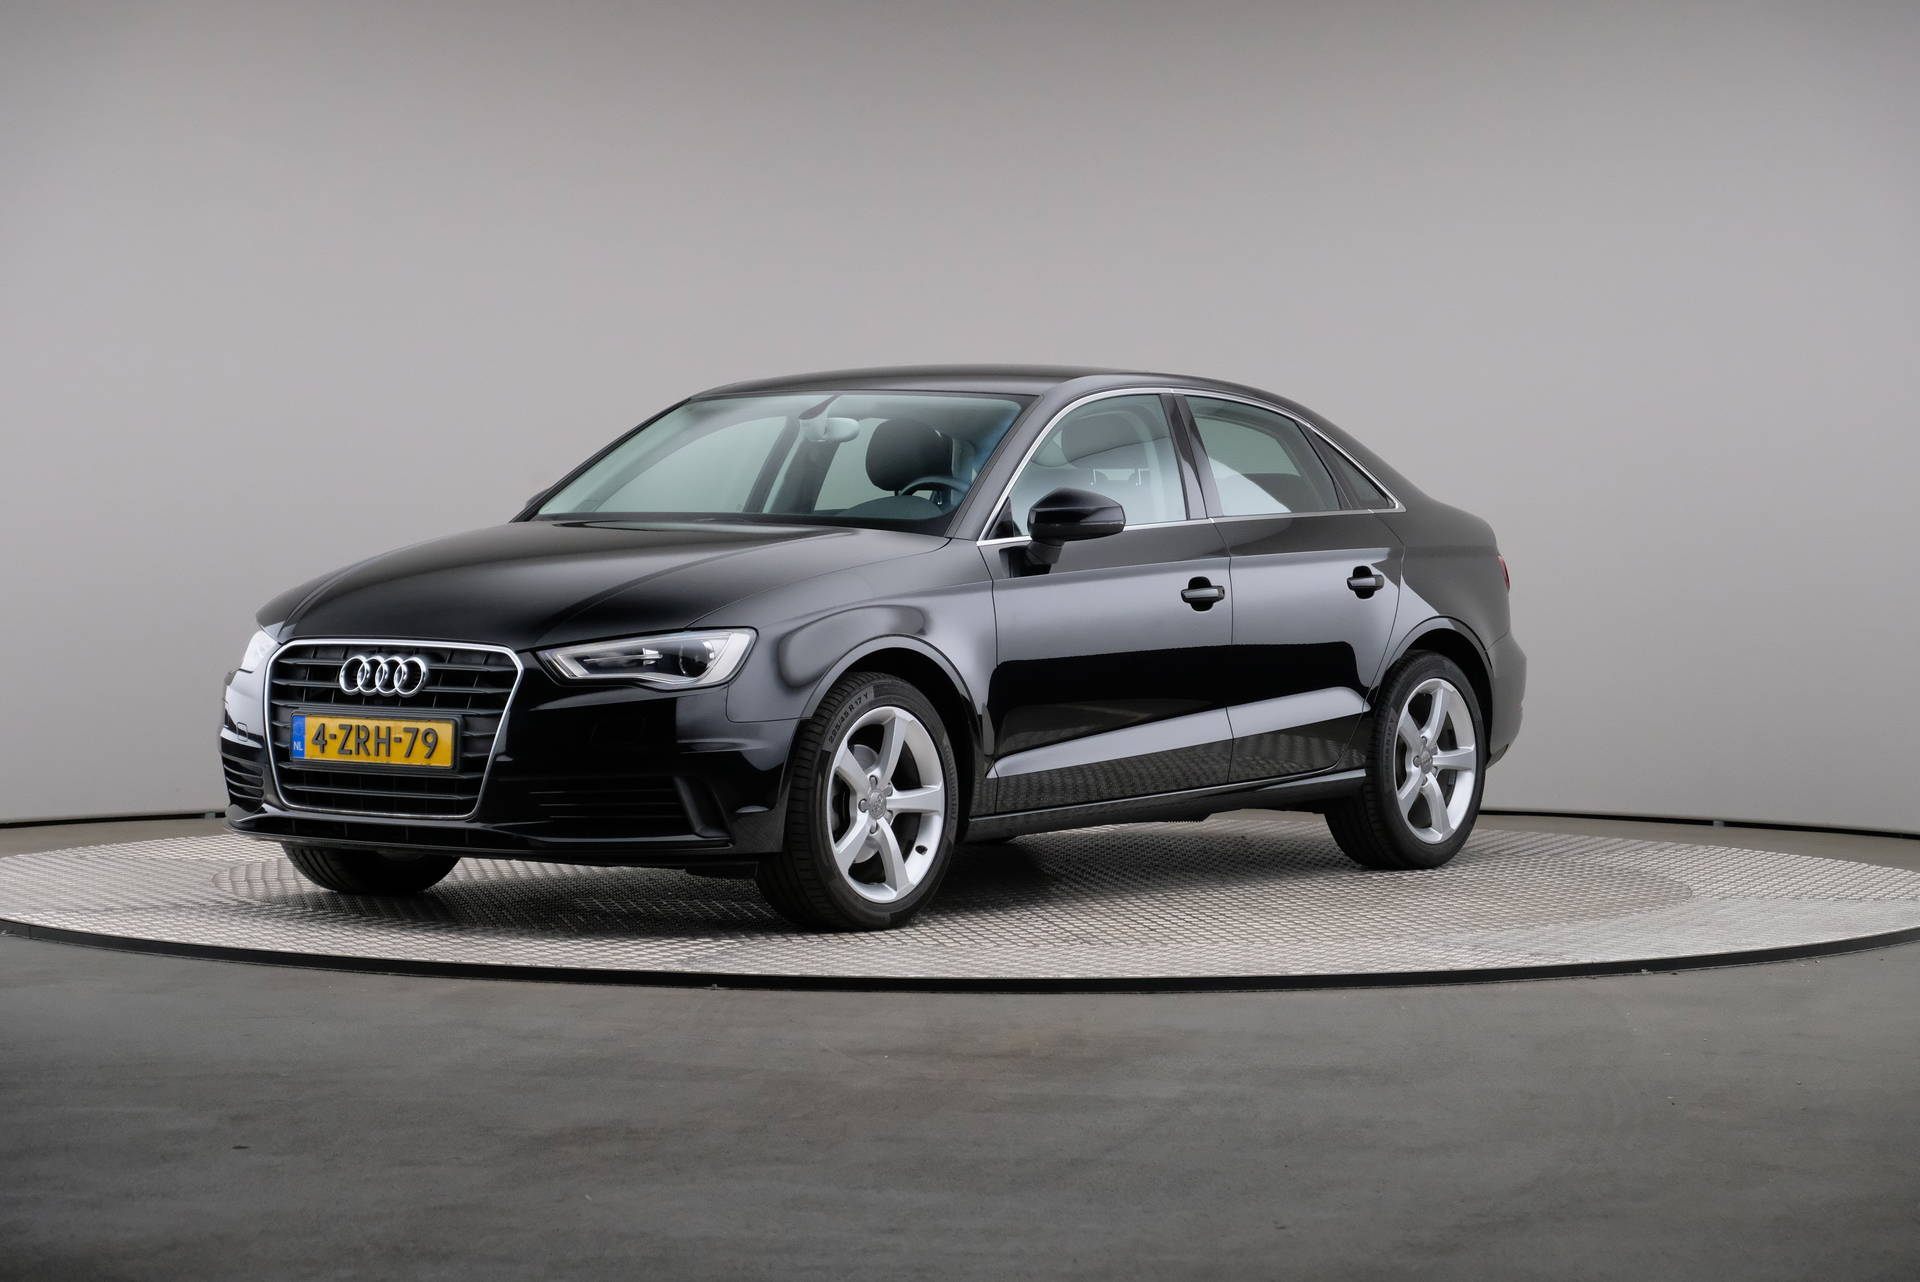 Audi A3 Limousine 1.6 TDI Attraction Pro Line Plus, Navigatie, Xenon, 360-image0